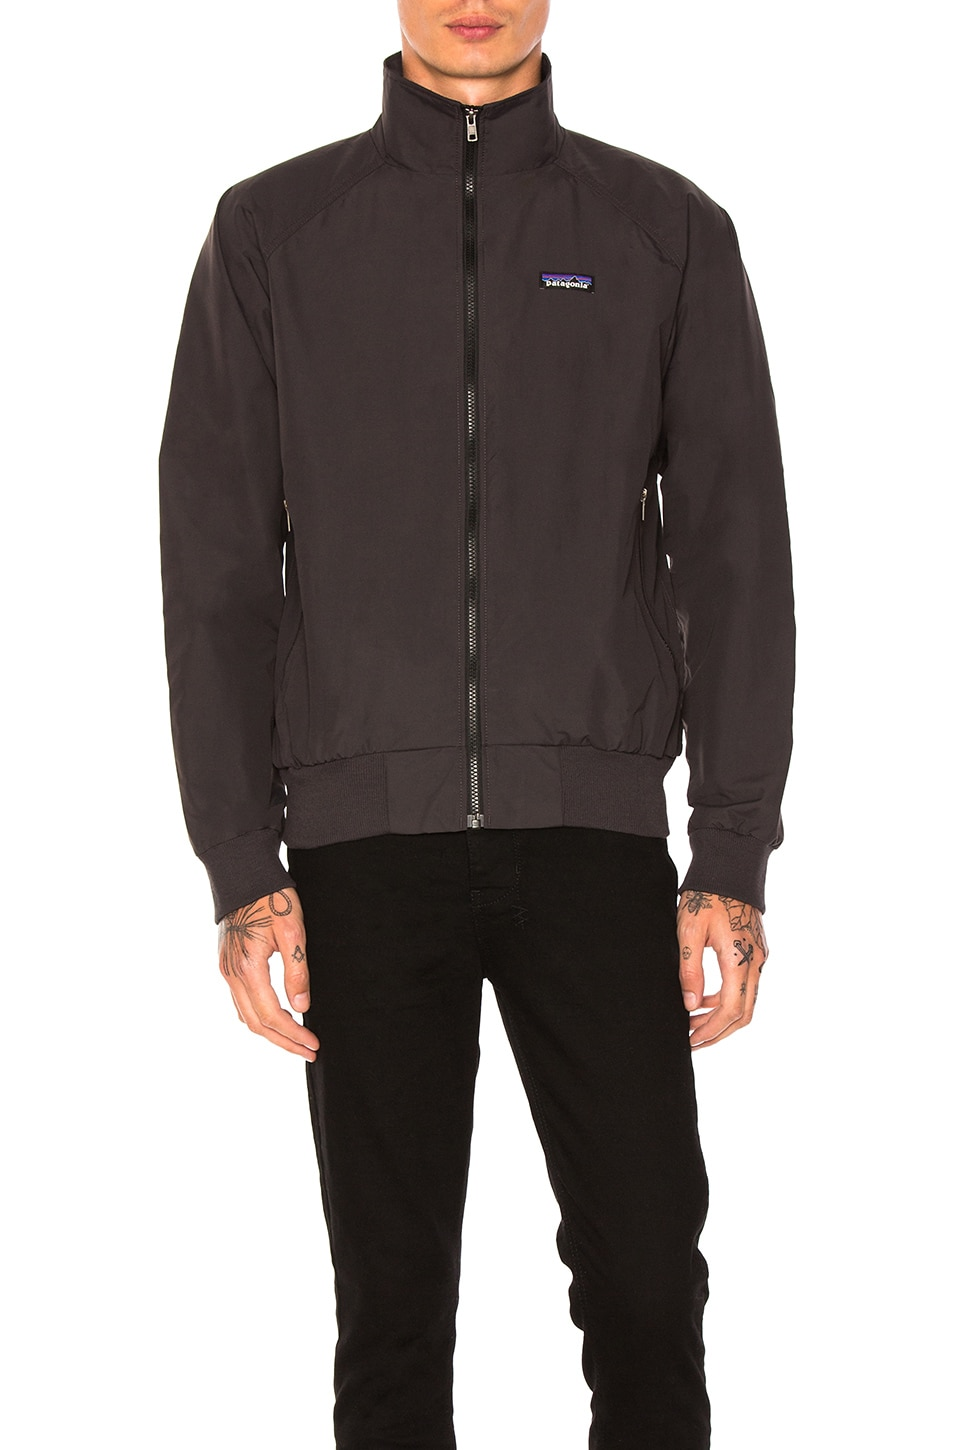 Baggies Jacket by Patagonia